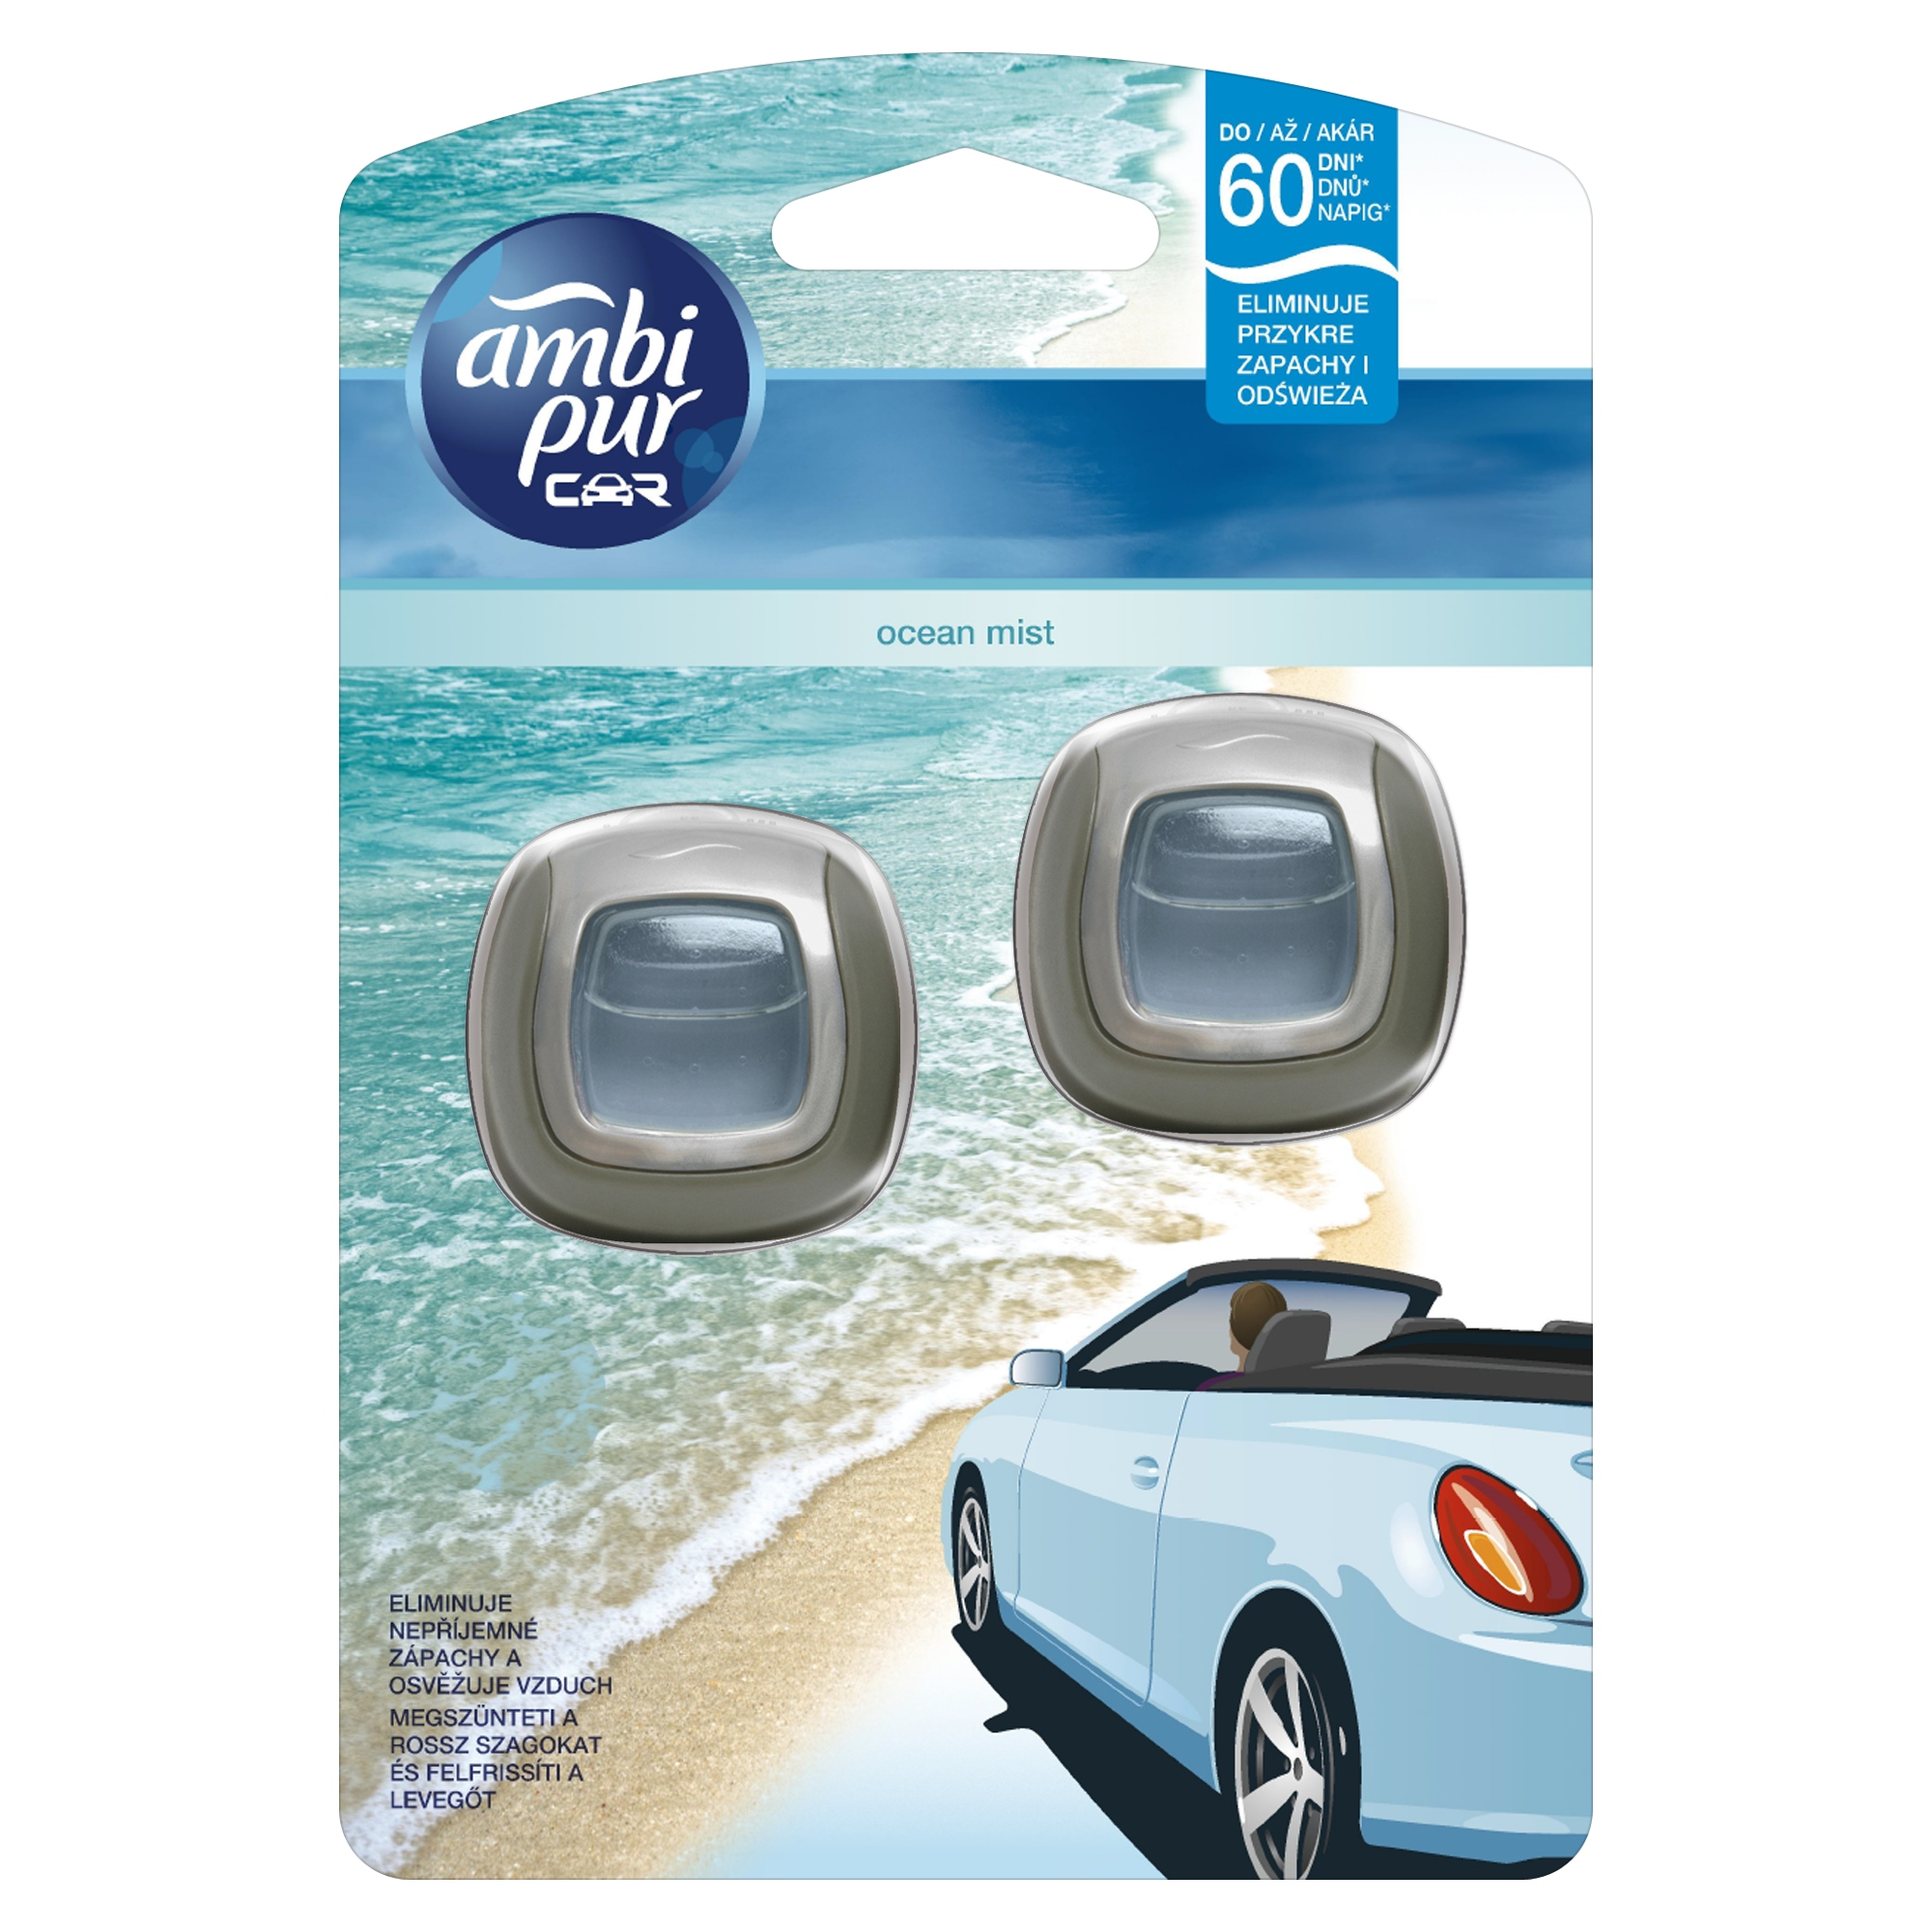 AmbiPur Car Jaguar Ocean Mist 2 x 2 ml